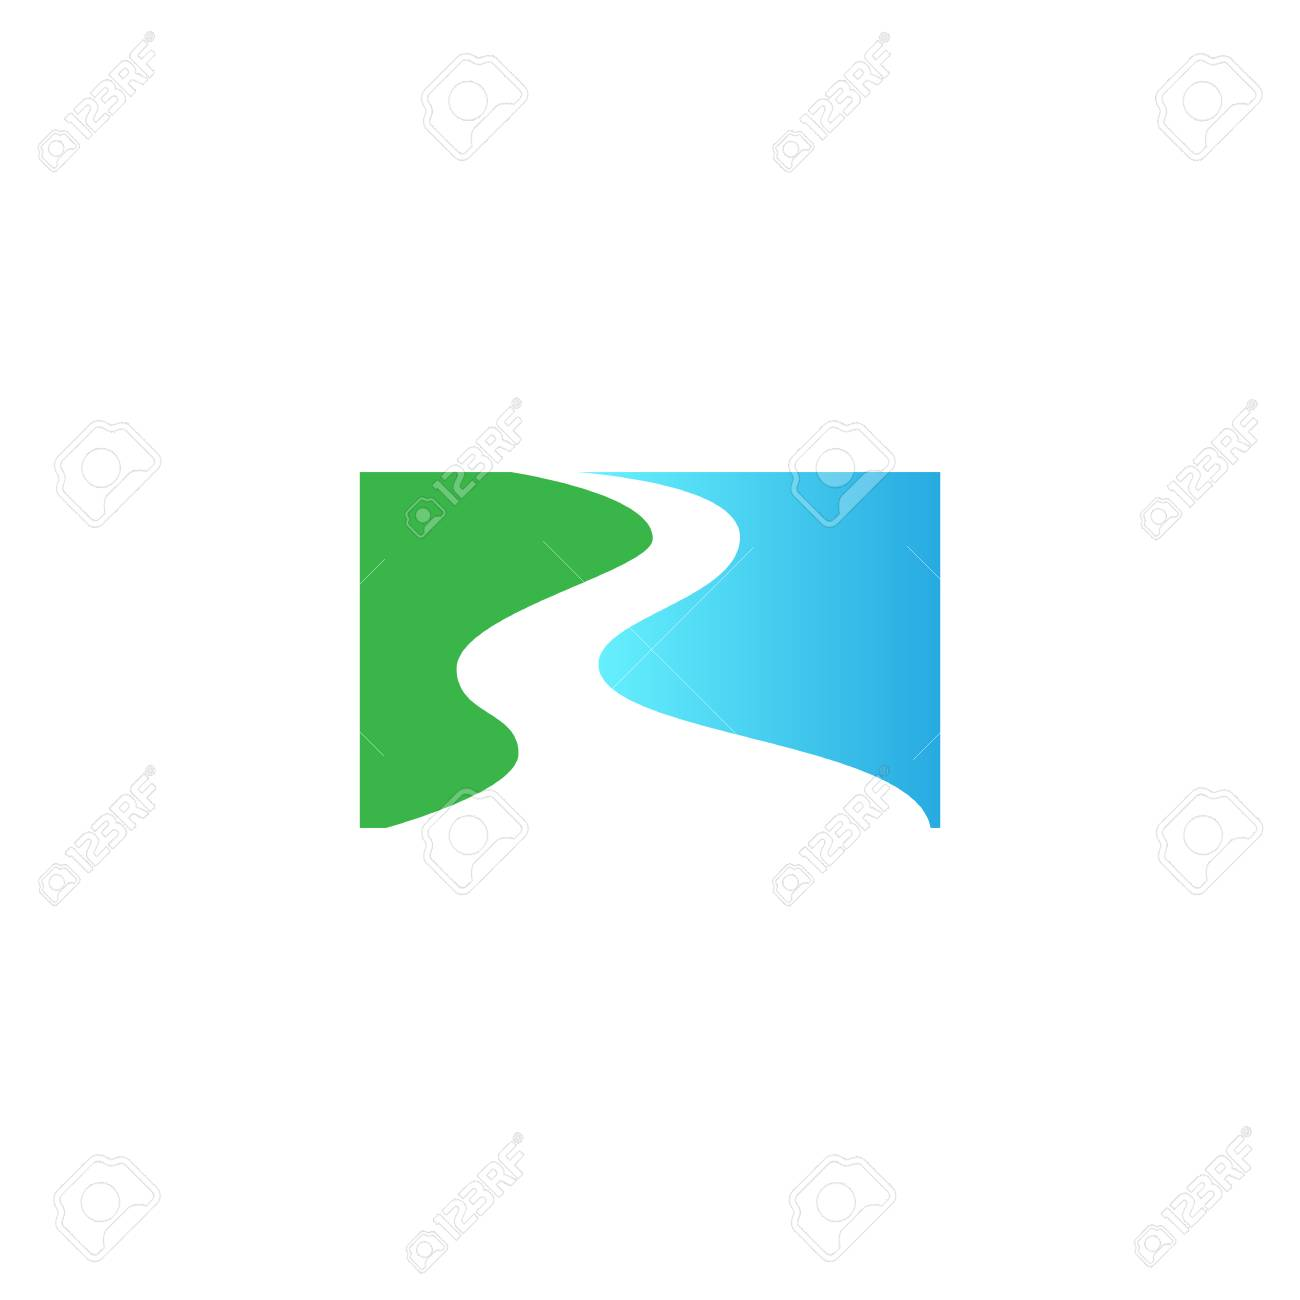 abstract river stream flowing shape vector logo design template royalty free cliparts vectors and stock illustration image 109095159 abstract river stream flowing shape vector logo design template